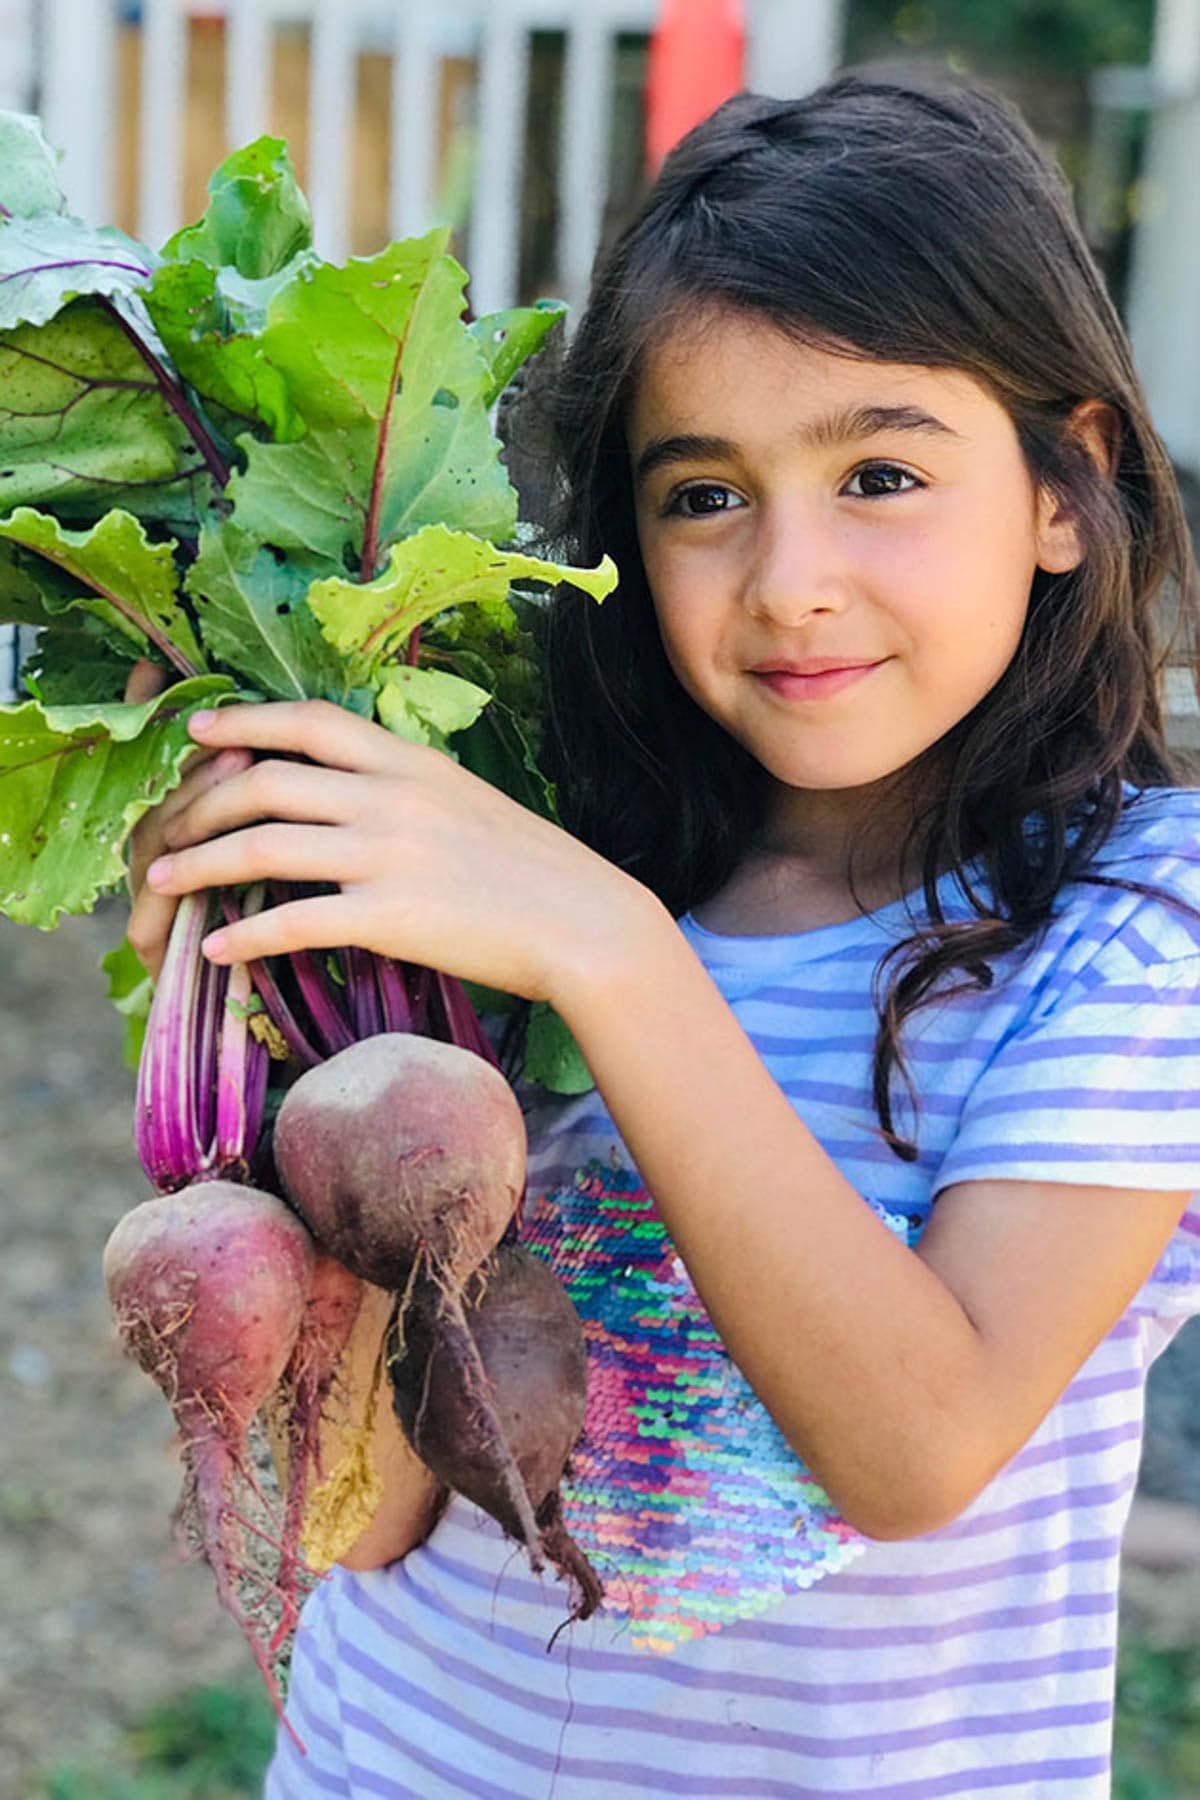 Nori holding fresh beets from the garden